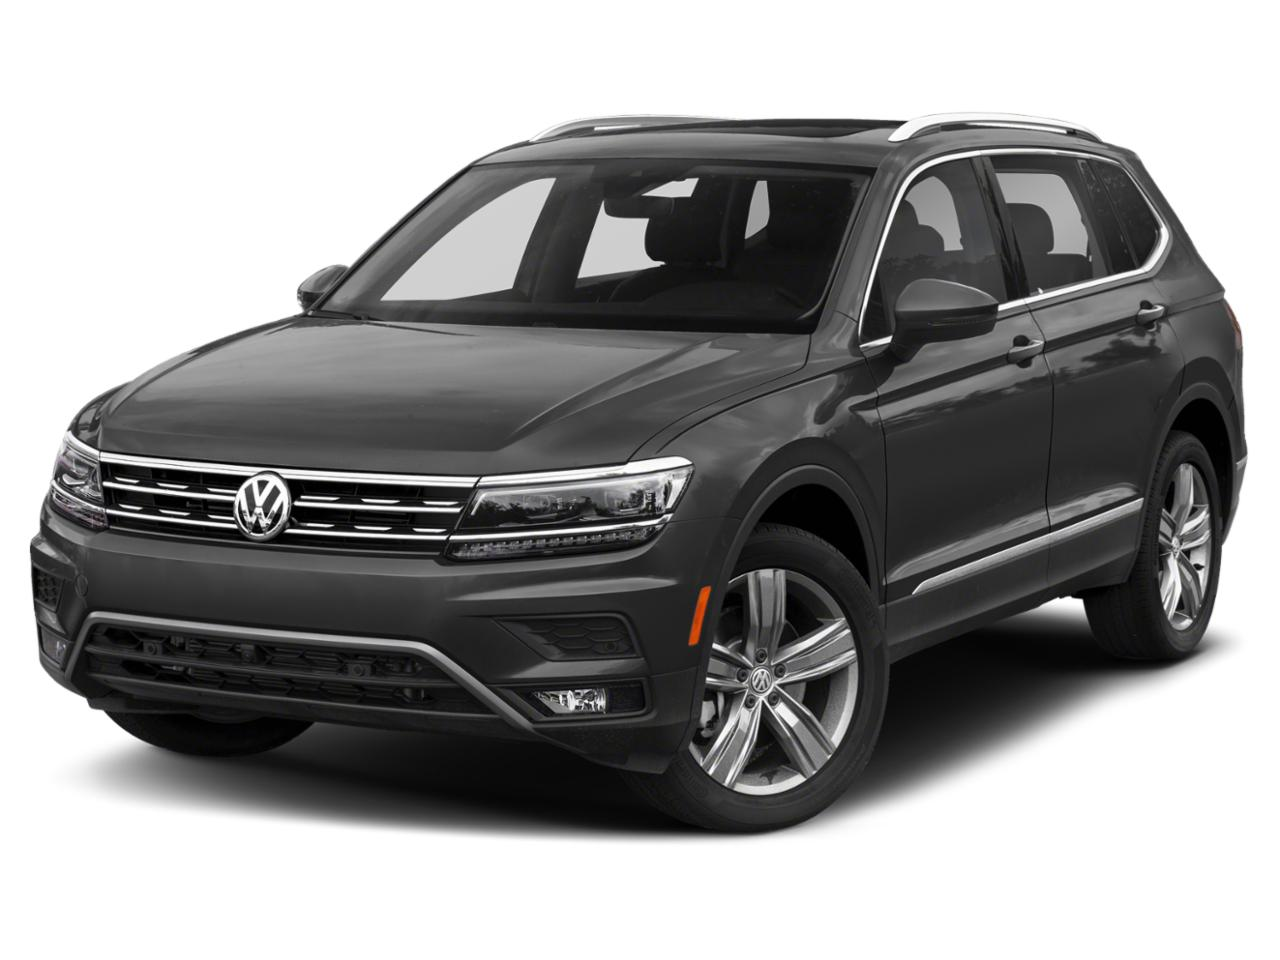 2018 Volkswagen Tiguan Vehicle Photo in Rockville, MD 20852